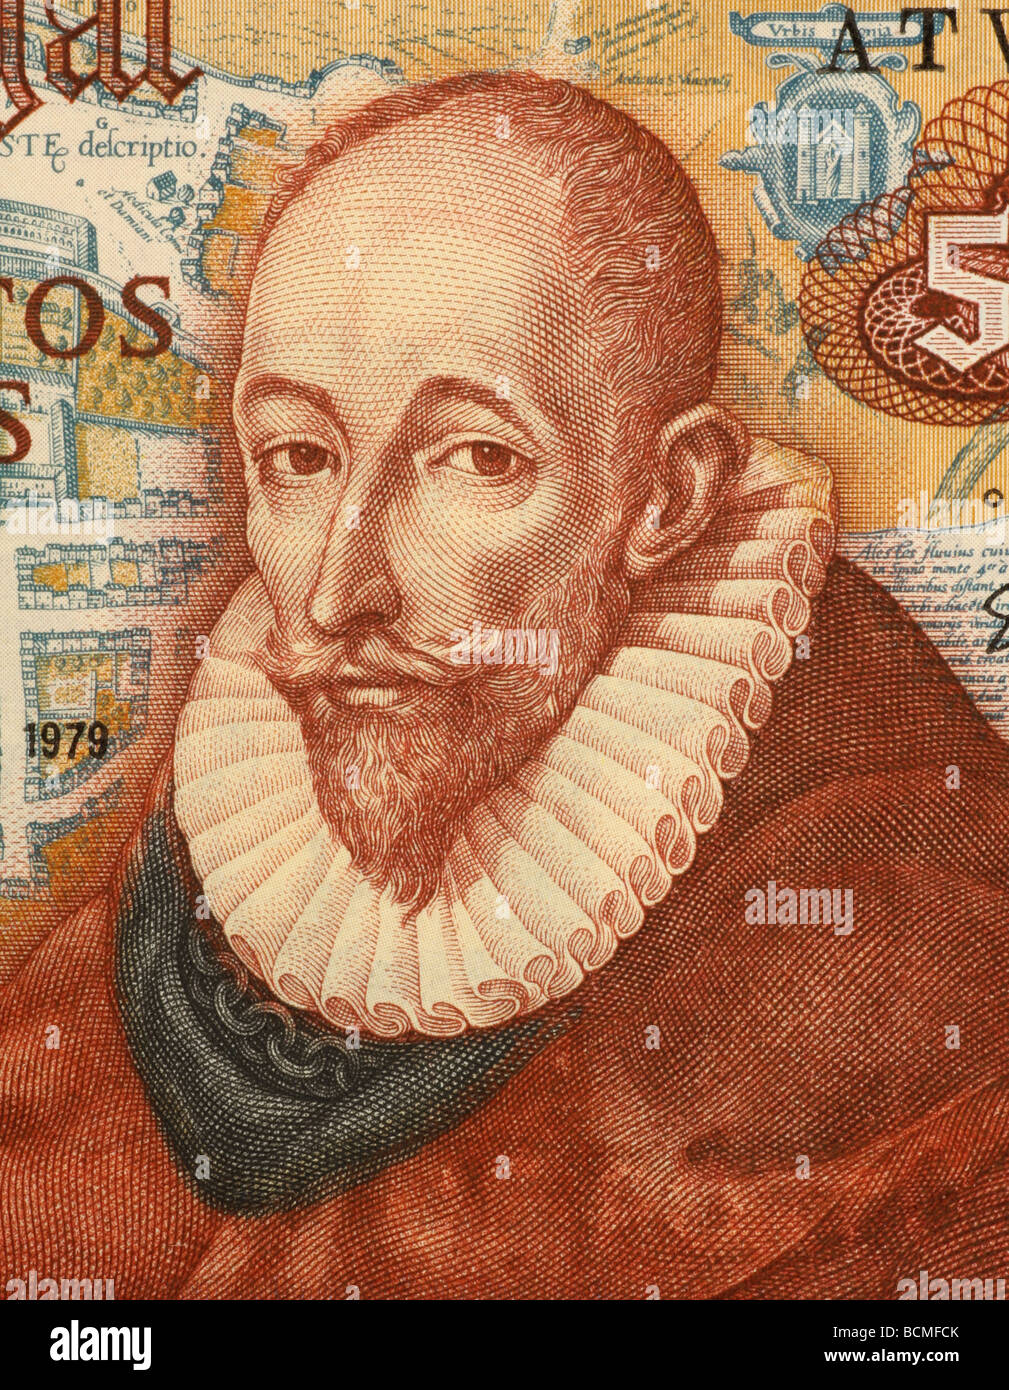 Francisco Sanchez on 500 Escudos 1979 Banknote from Portugal - Stock Image